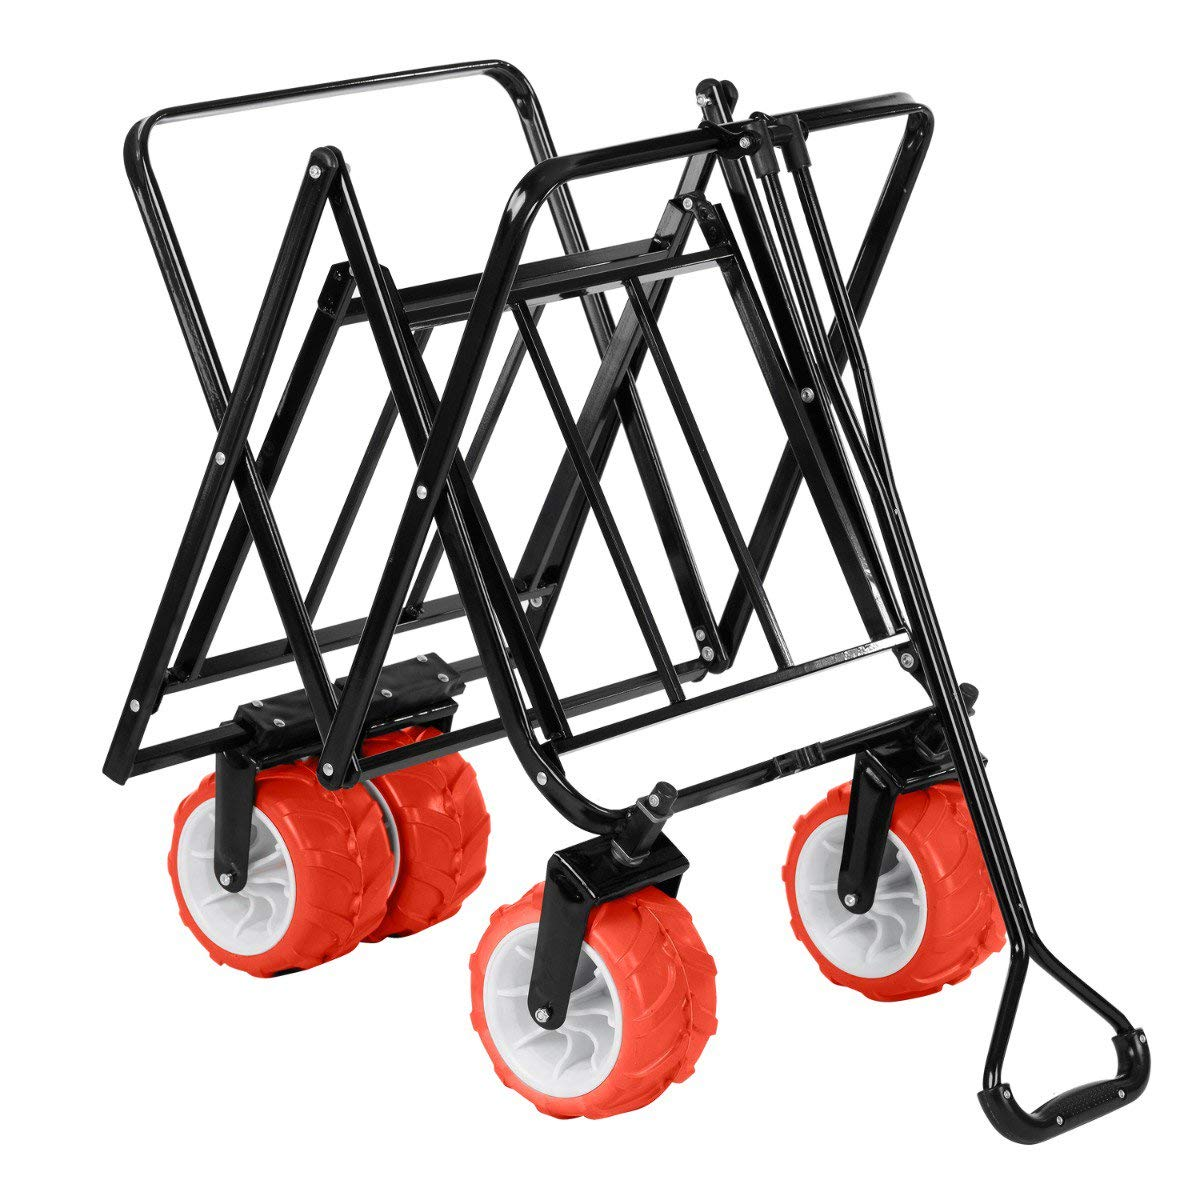 Trail Outdoor Leisure Collapsible Portable Camping Wagon Trolley Folding Wheeled Festival Cart